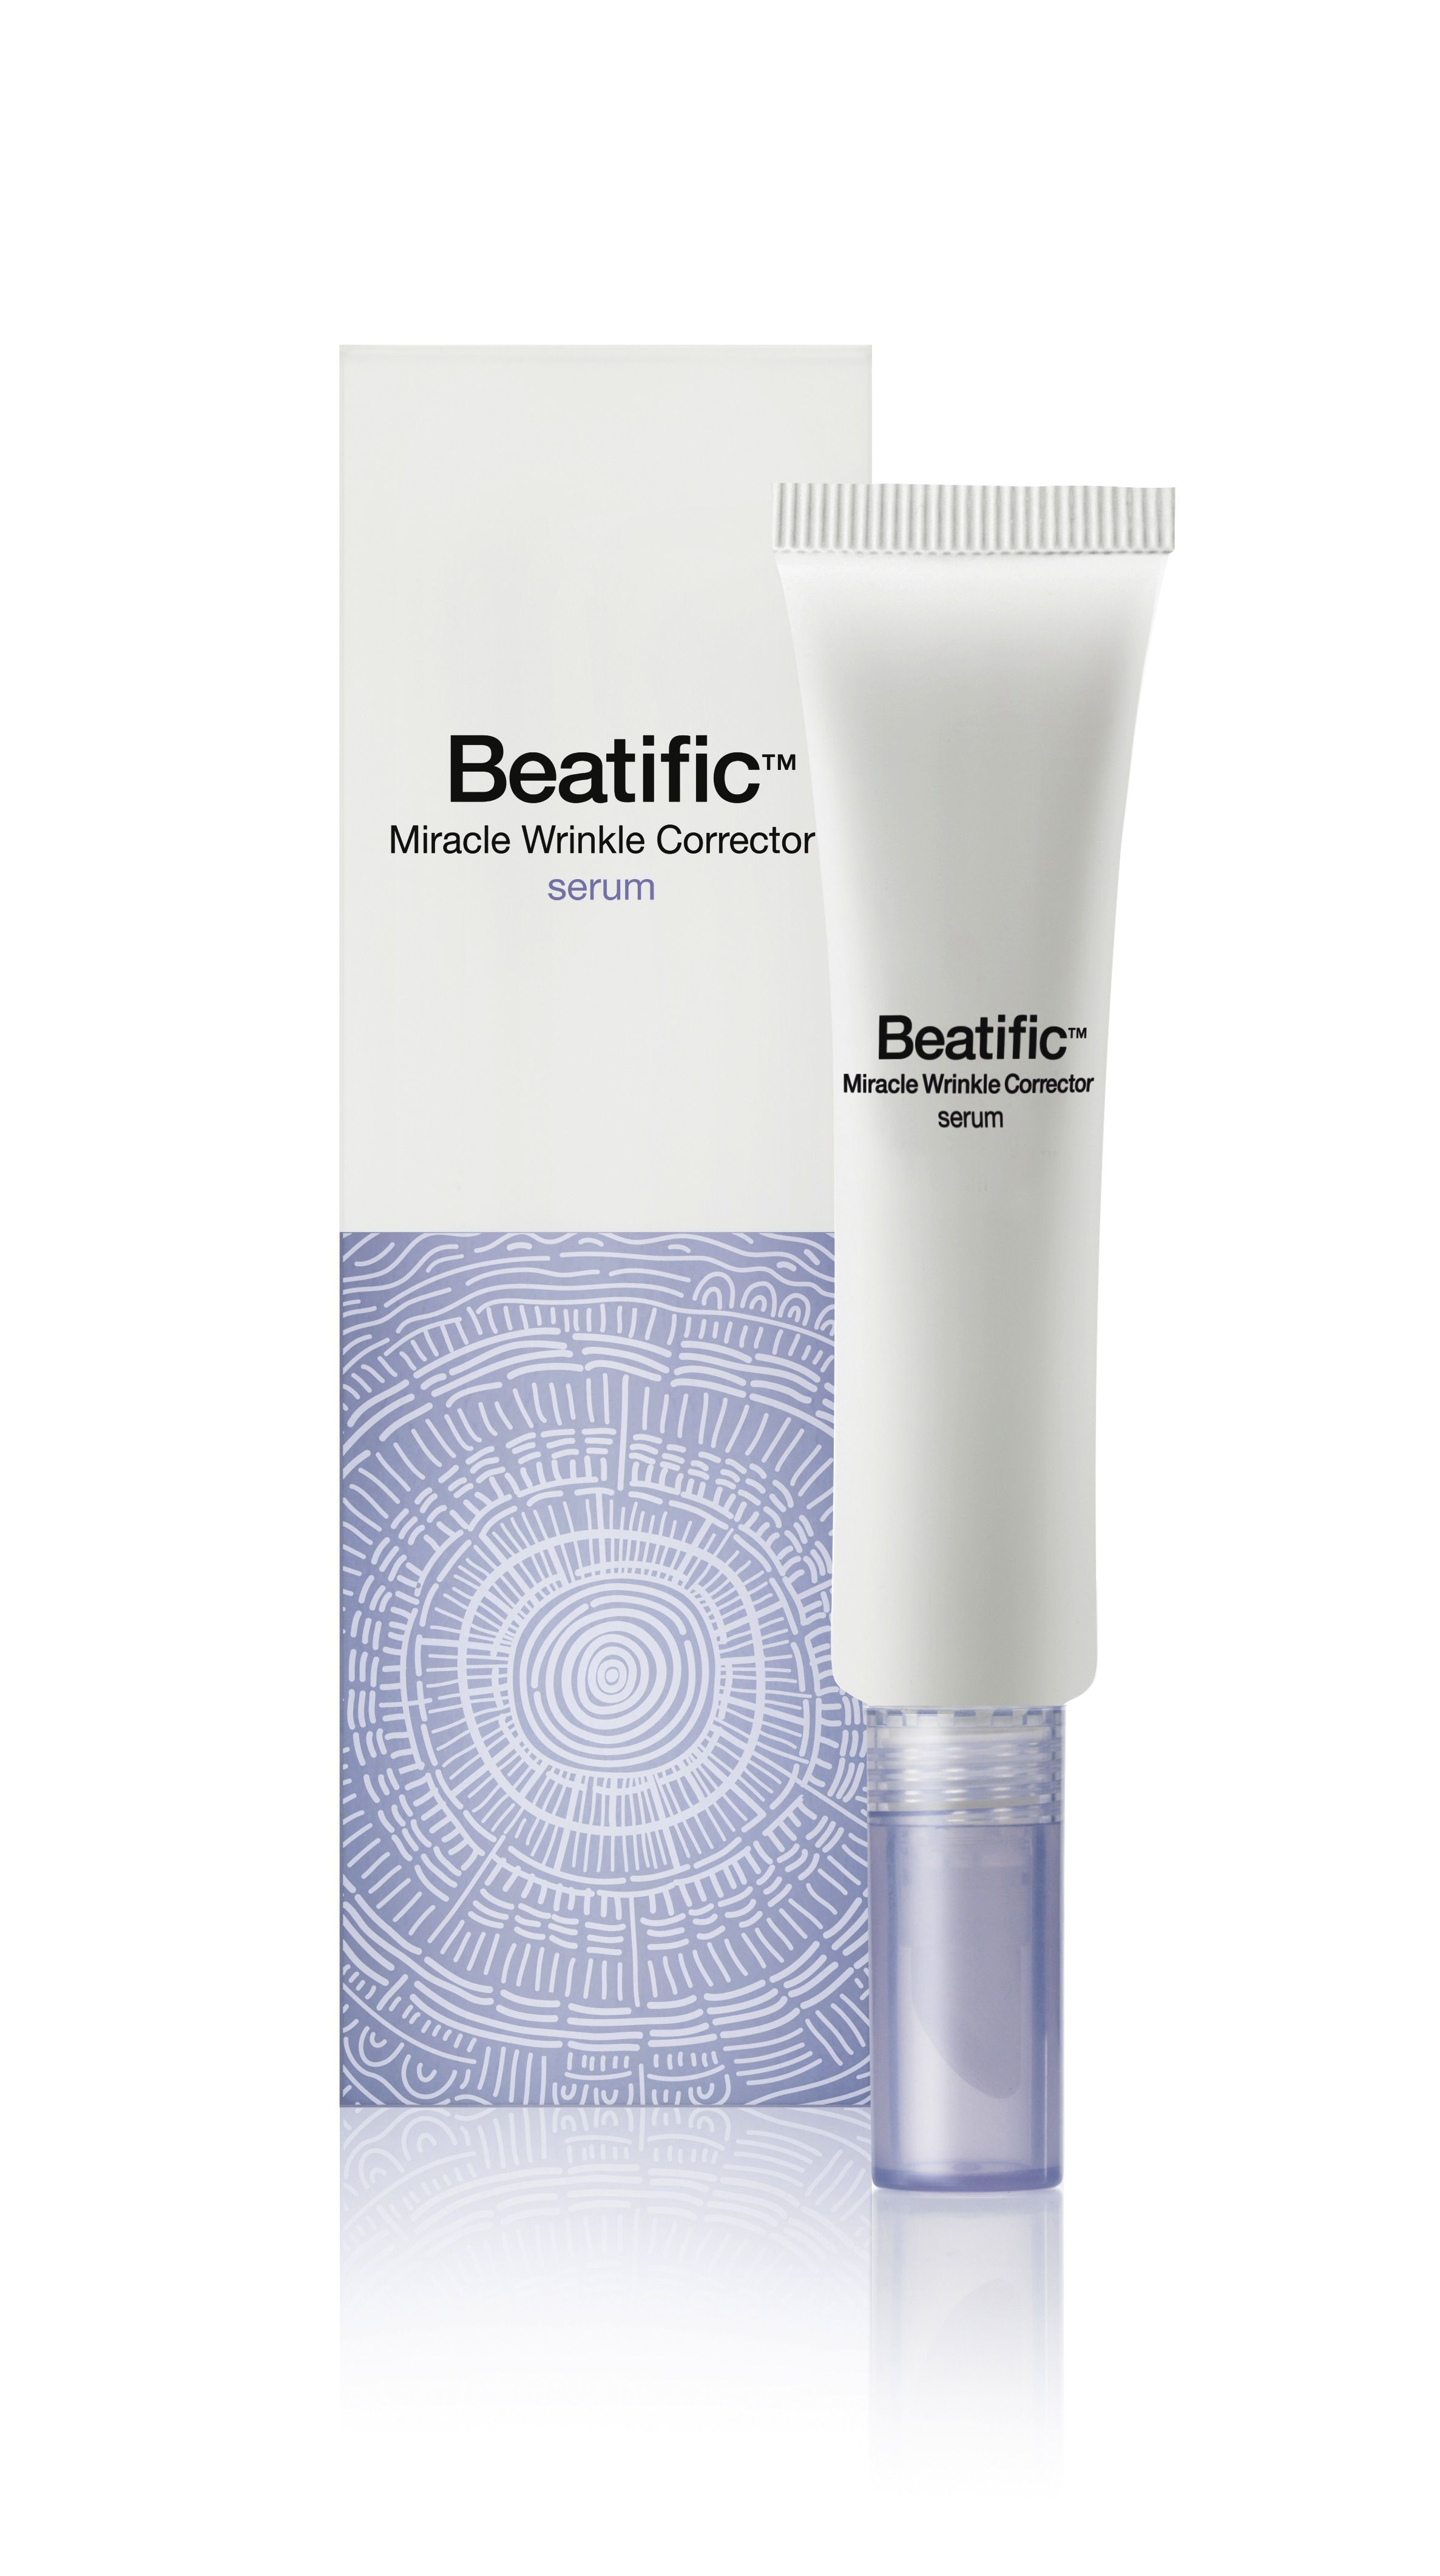 Miracle wrinkle corrector - Wrinkle filling & smoothing face serum